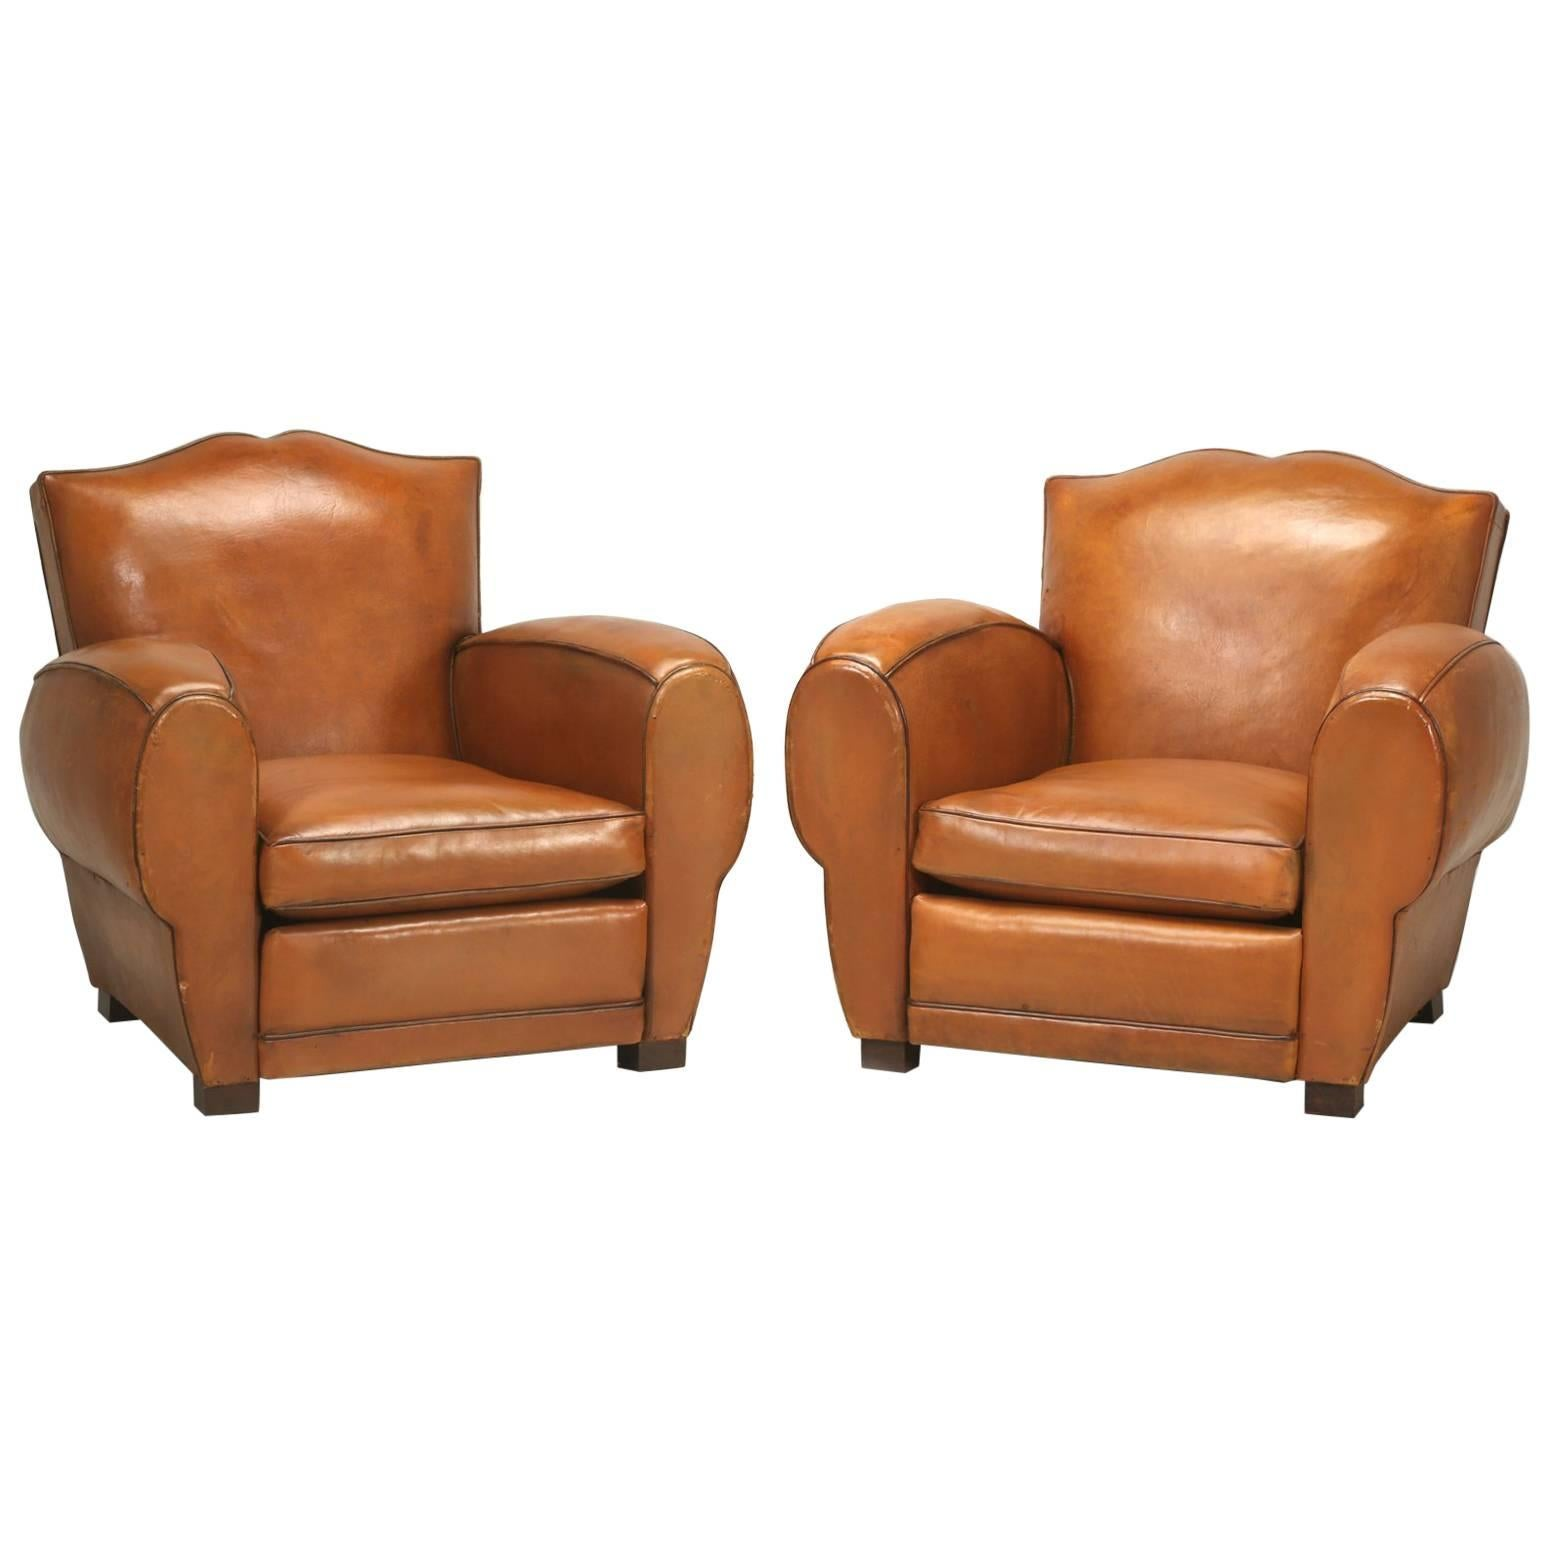 French Art Deco Original Moustache Leather Club Chairs Correctly Restored  sc 1 st  1stDibs & Antique and Vintage Club Chairs - 2723 For Sale at 1stdibs